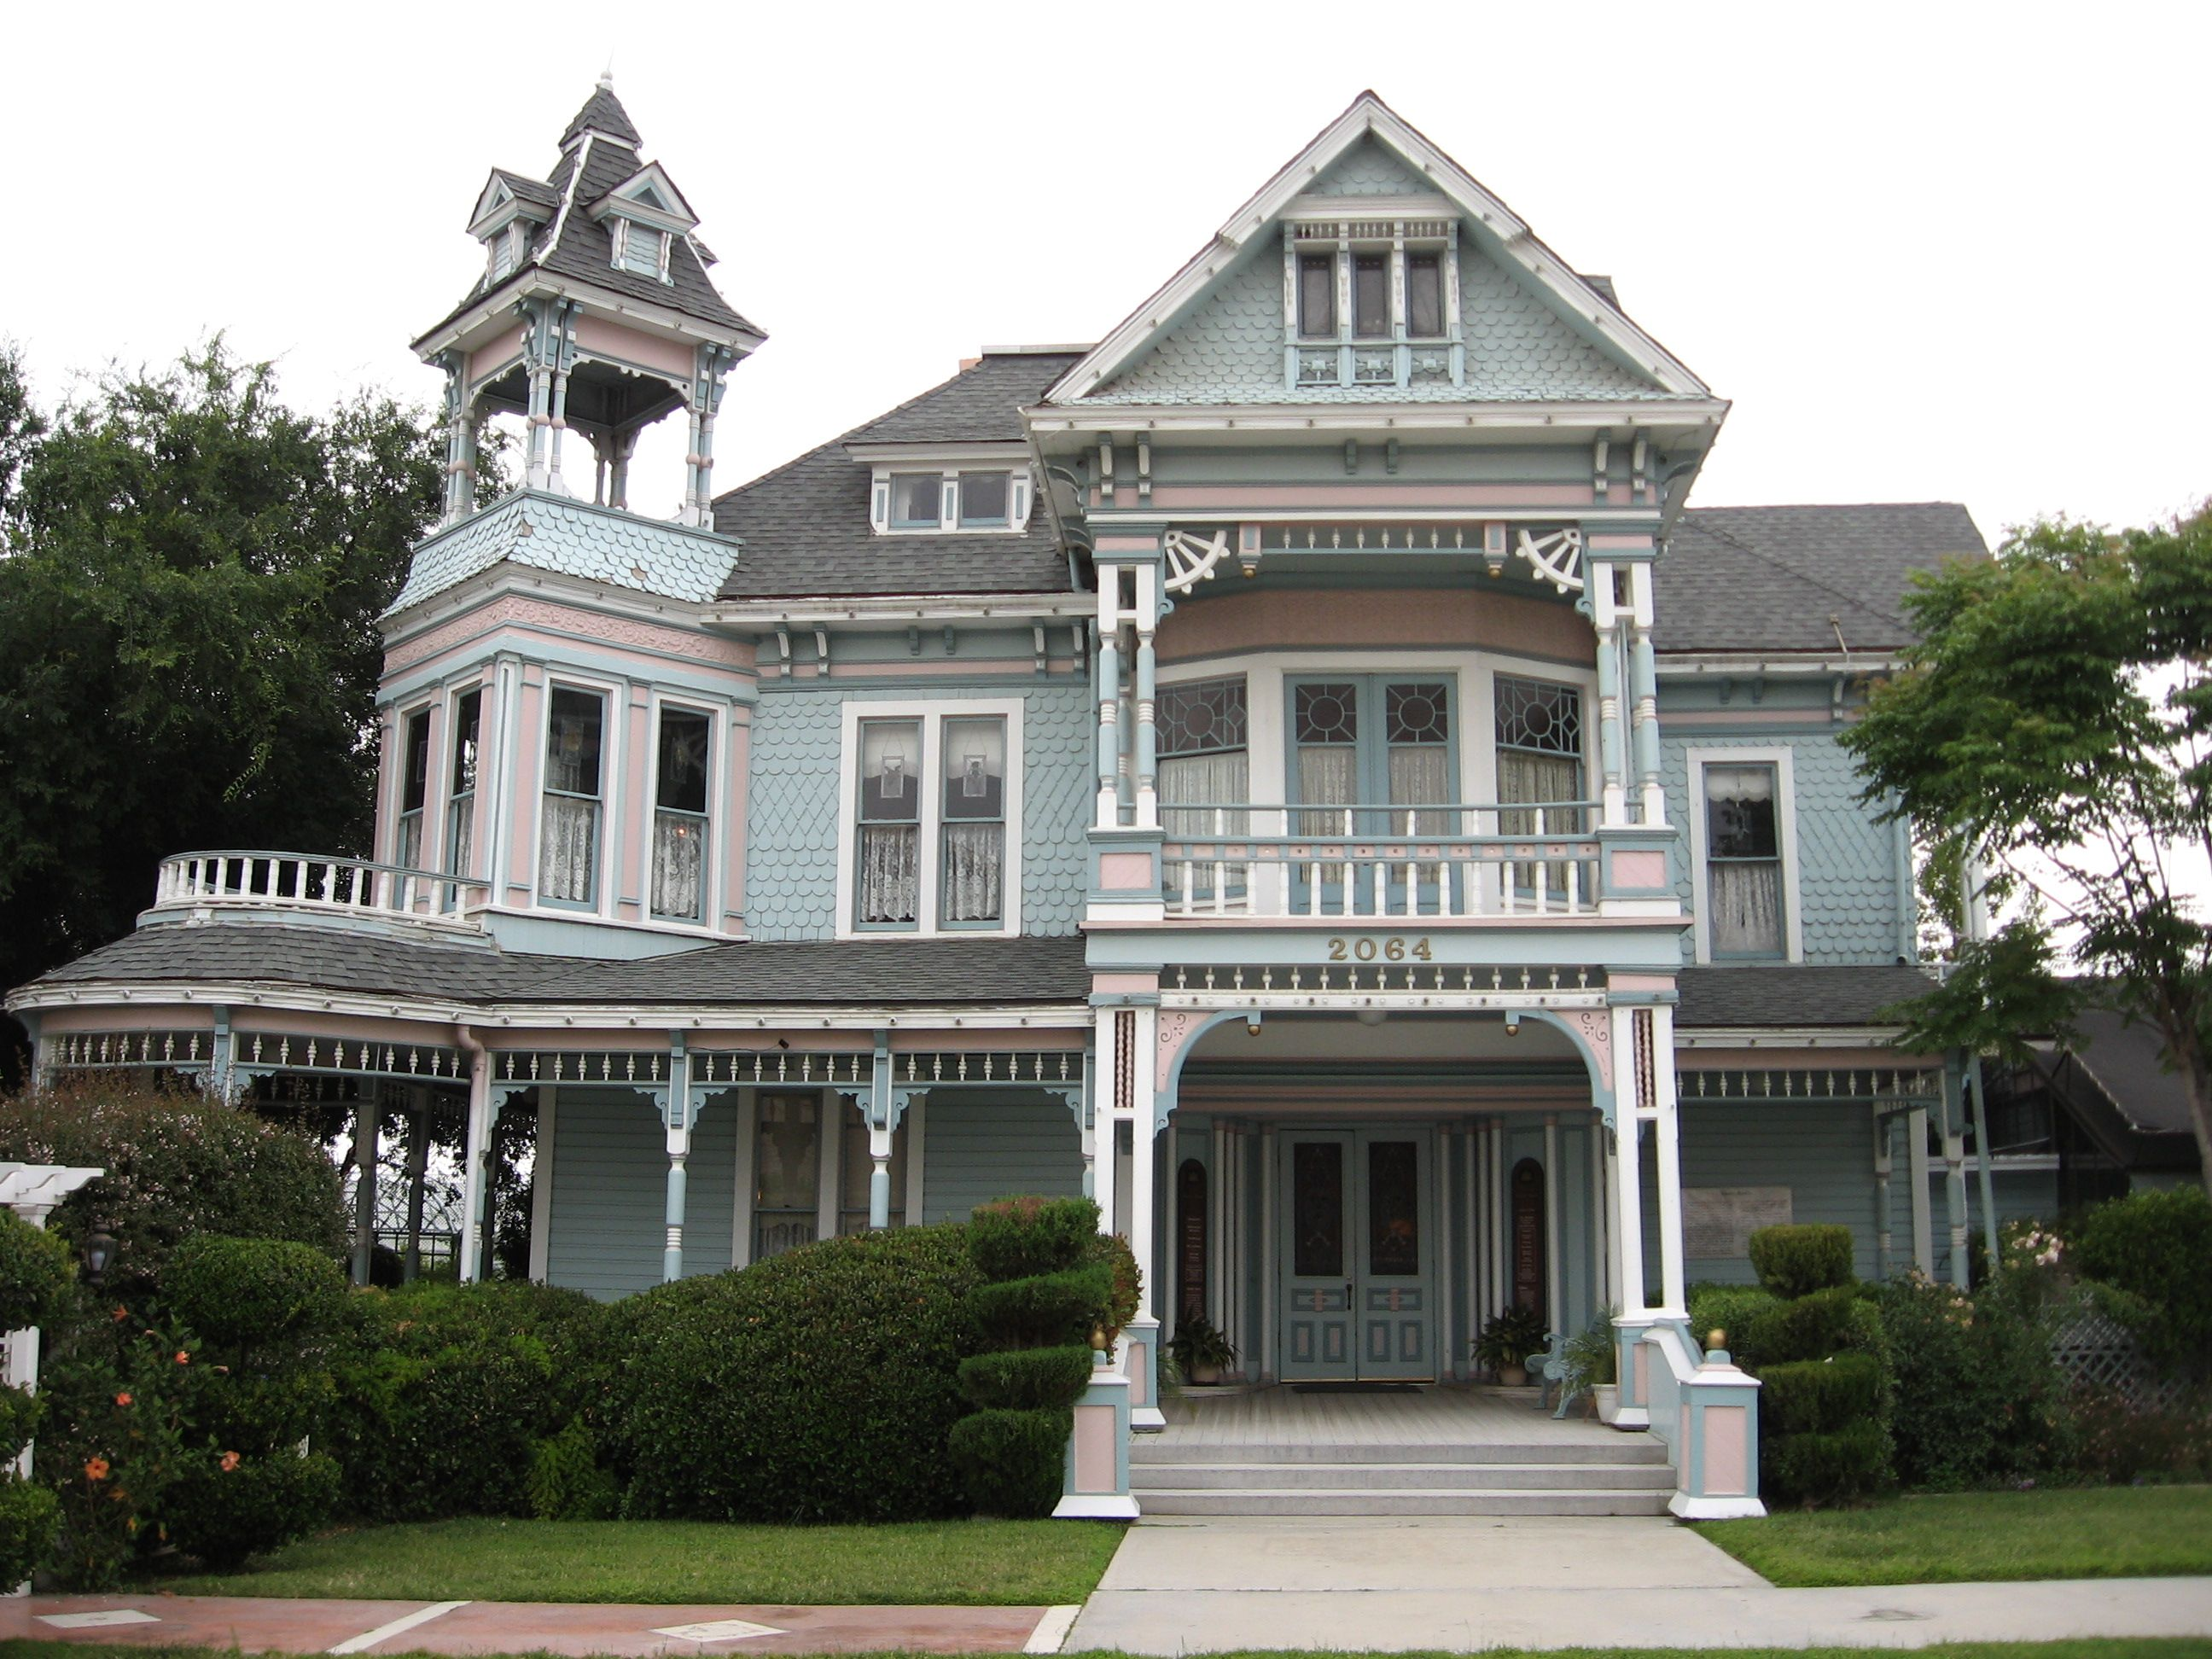 1890 edwards mansion in redlands california our family 1890 home architecture